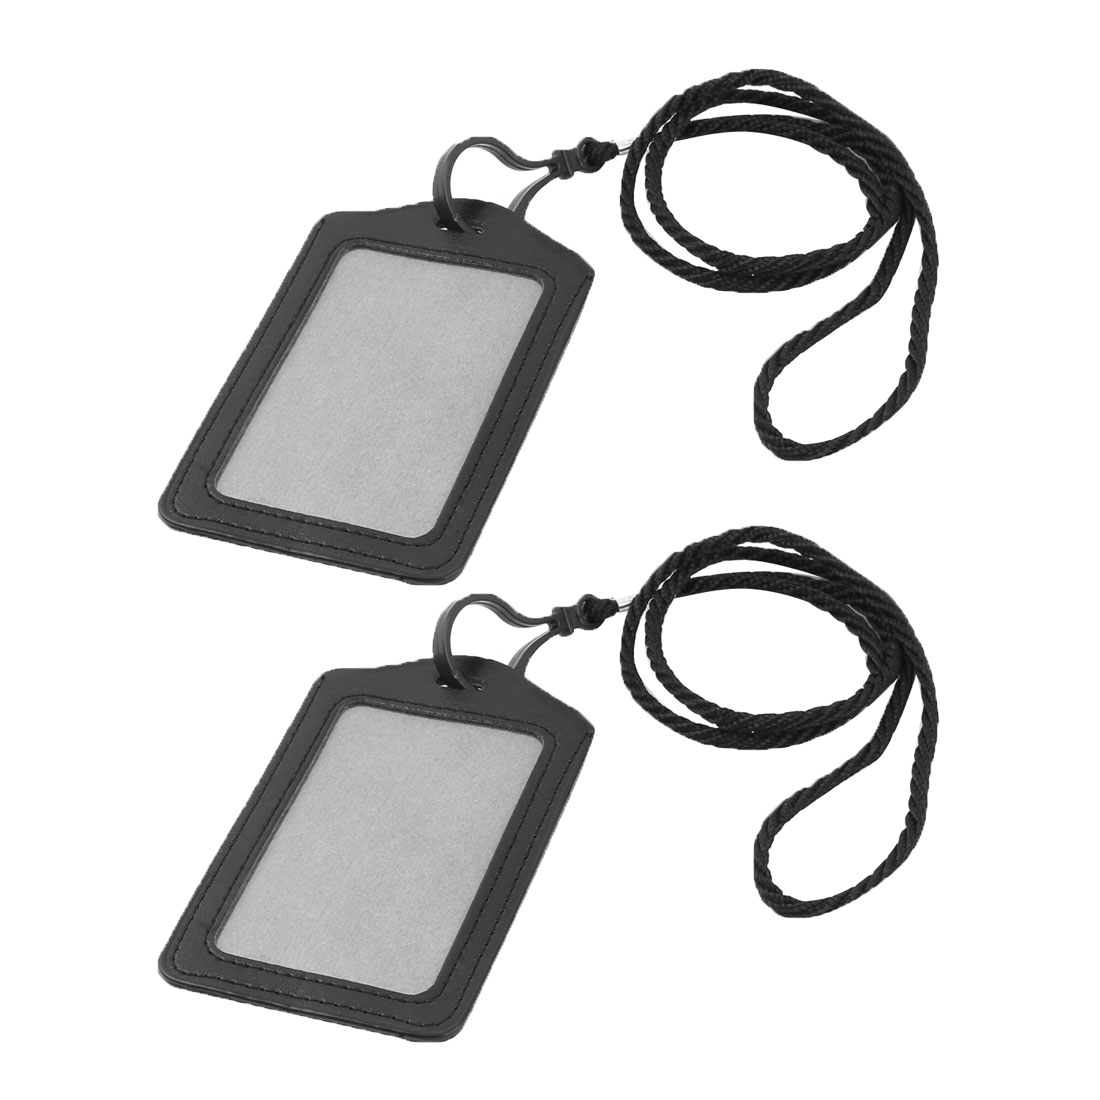 Unique Bargains 2 Pcs School Nylon Neck Cord String Lanyard Vertical ID Badge Holder Black